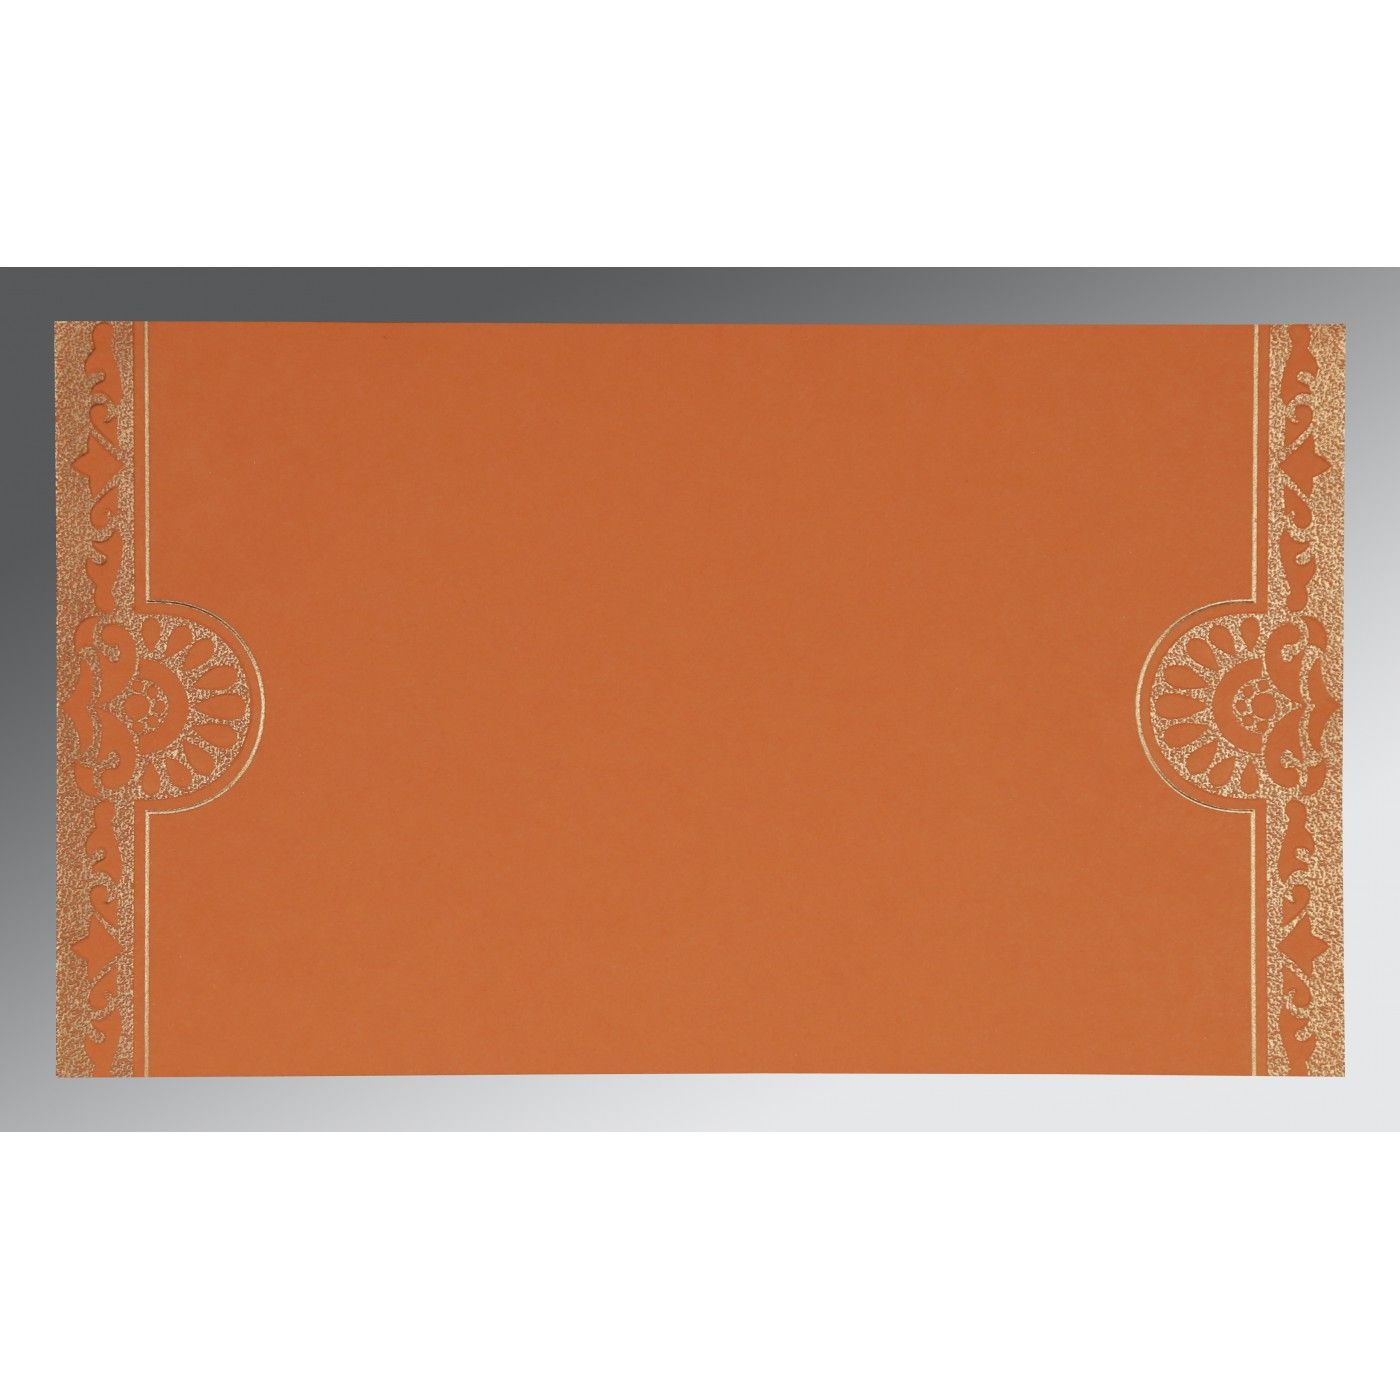 OFF-WHITE SHIMMERY FLORAL THEMED - SCREEN PRINTED WEDDING CARD : CI-8227D - IndianWeddingCards